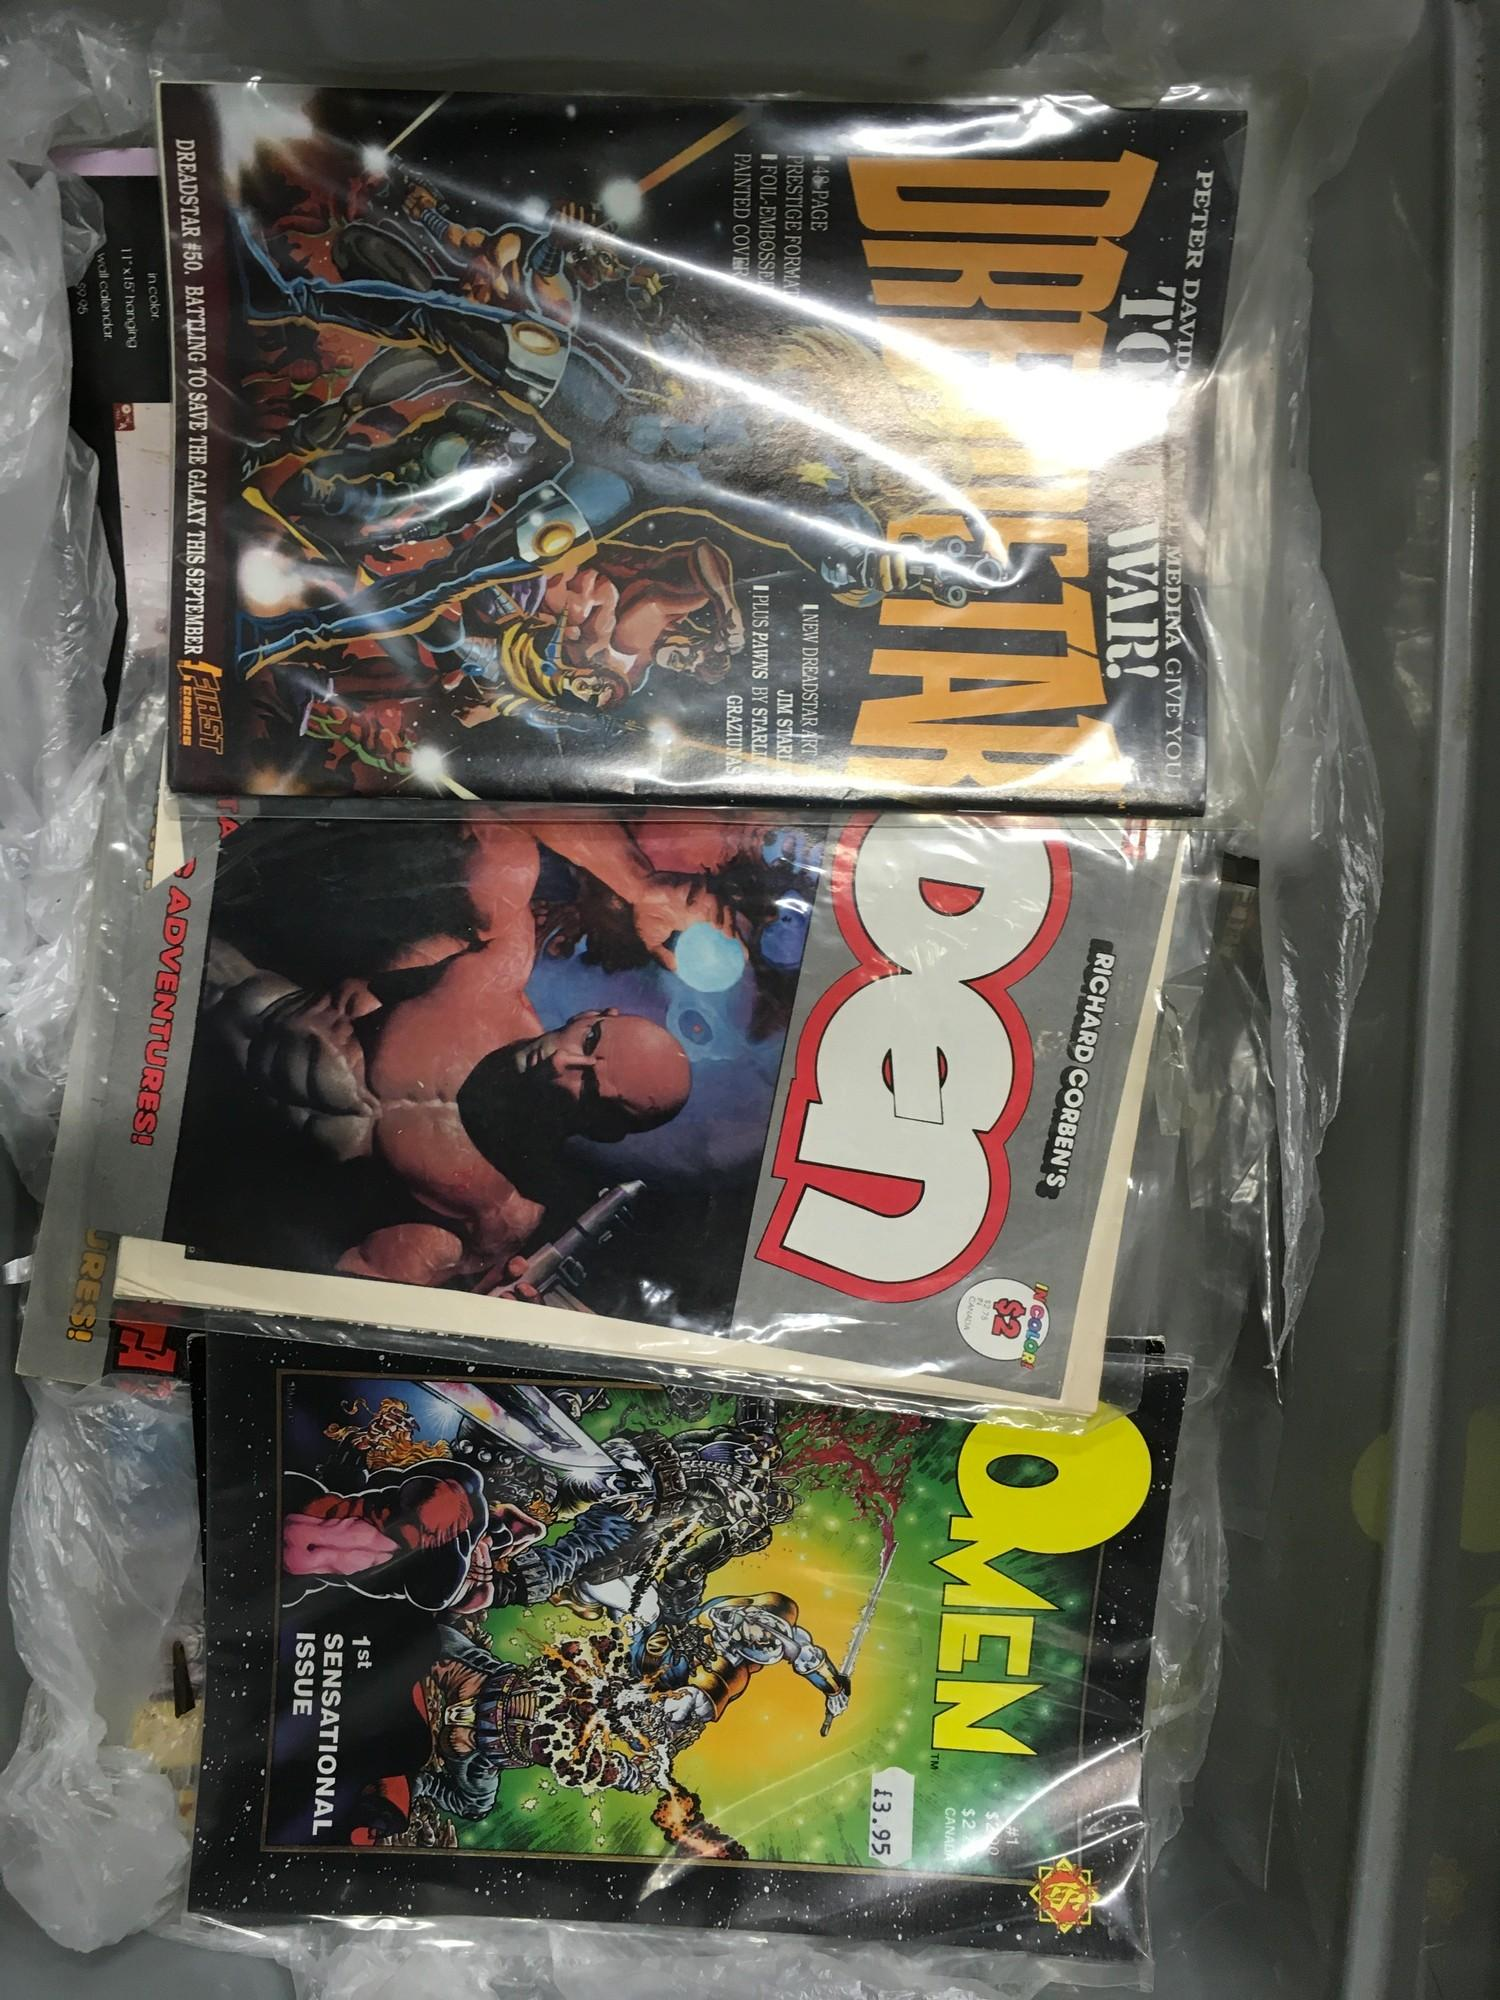 Large collection of various comics to include Marvel, DC, First Comics, Dark Horse Comics and